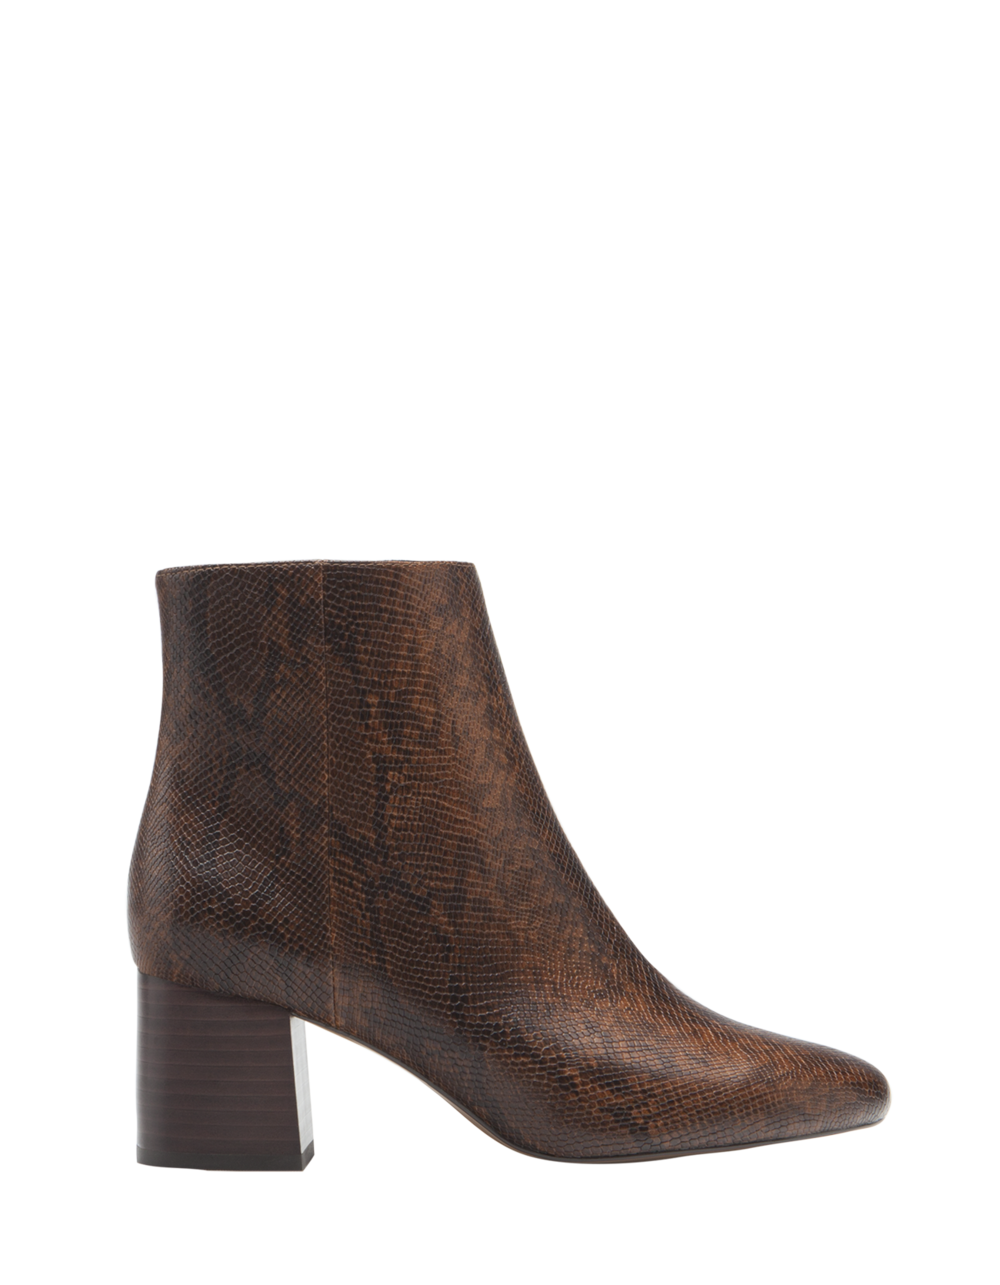 Stradivarius_fw15_shoes (2).png